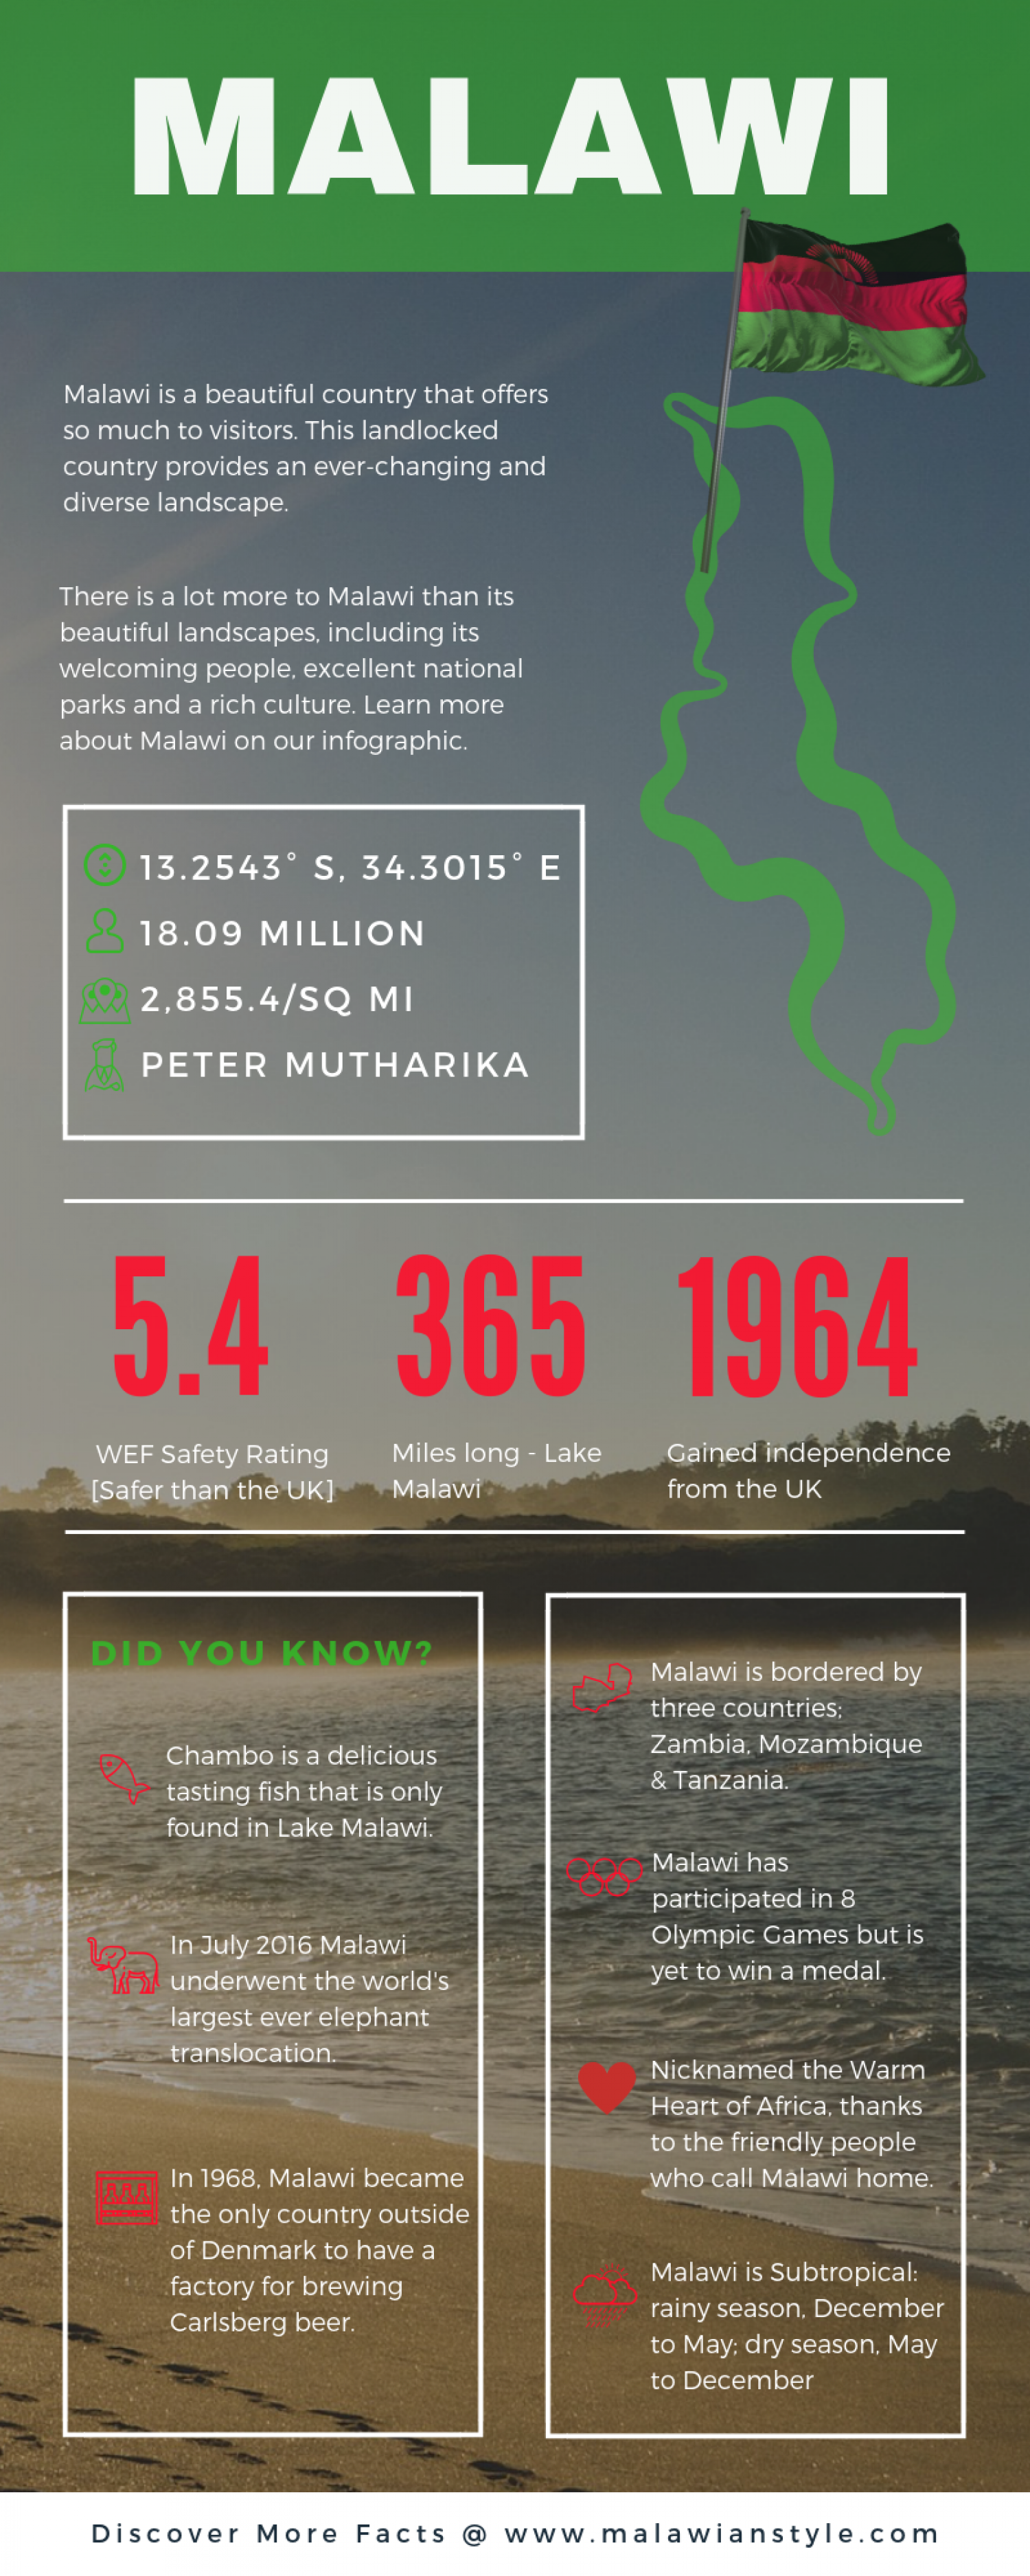 Malawi Facts Infographic